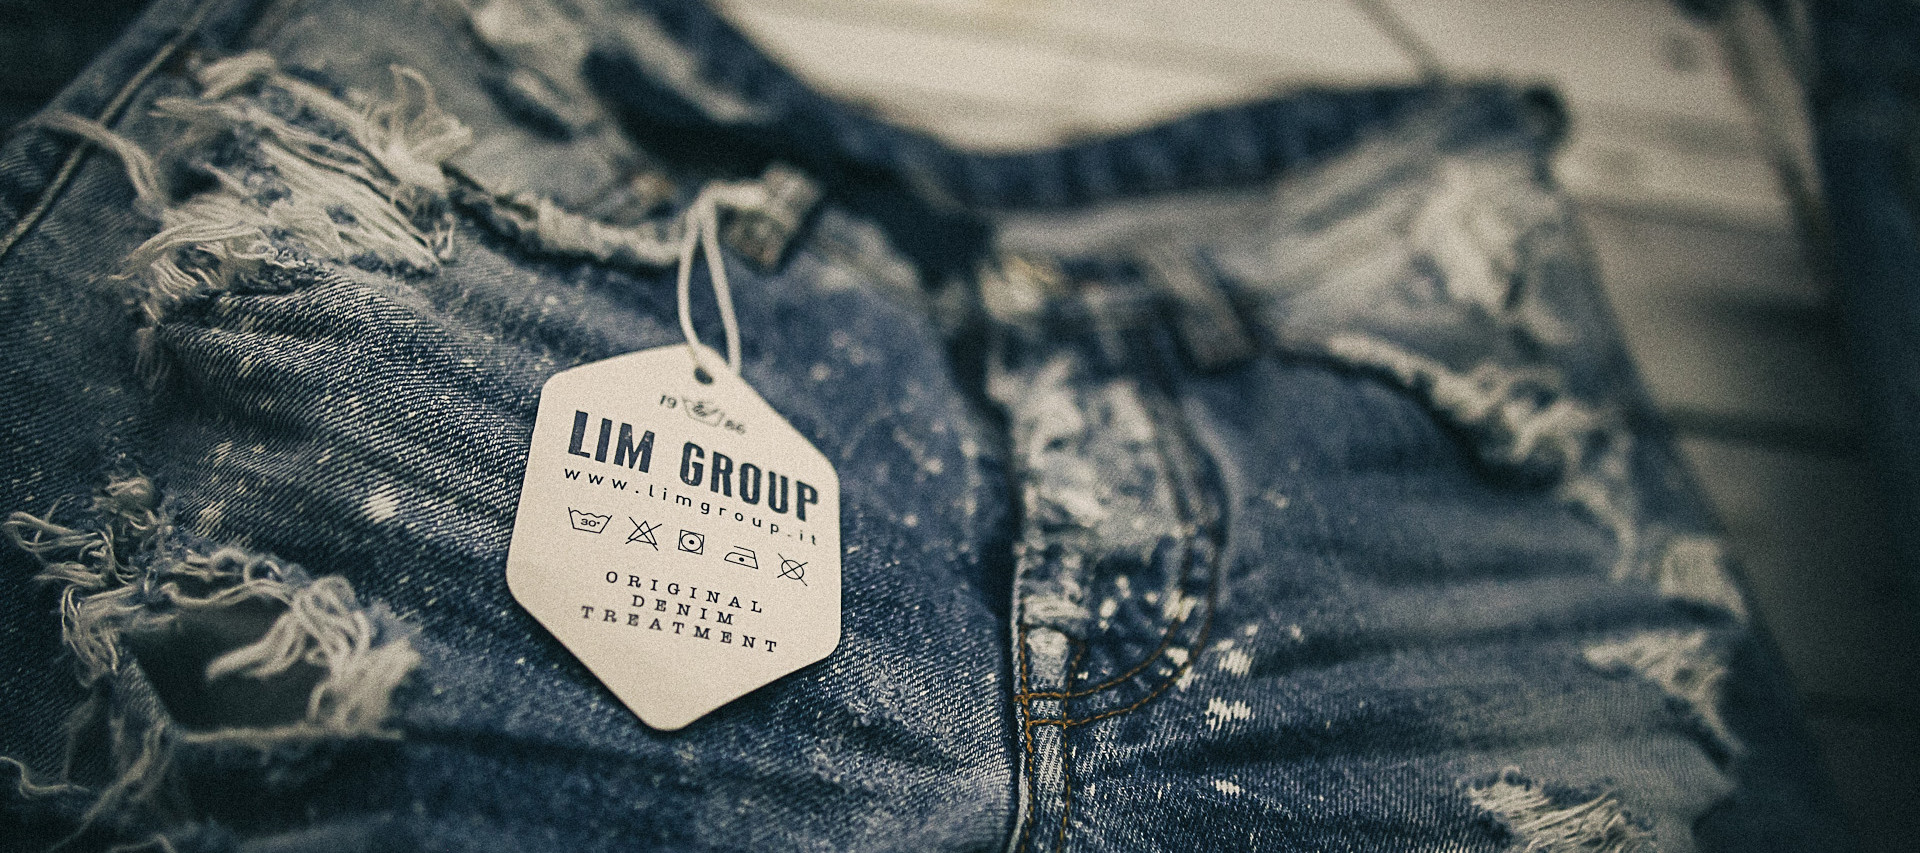 LIM-Group-Original-Treatments-pantalone-prototipia